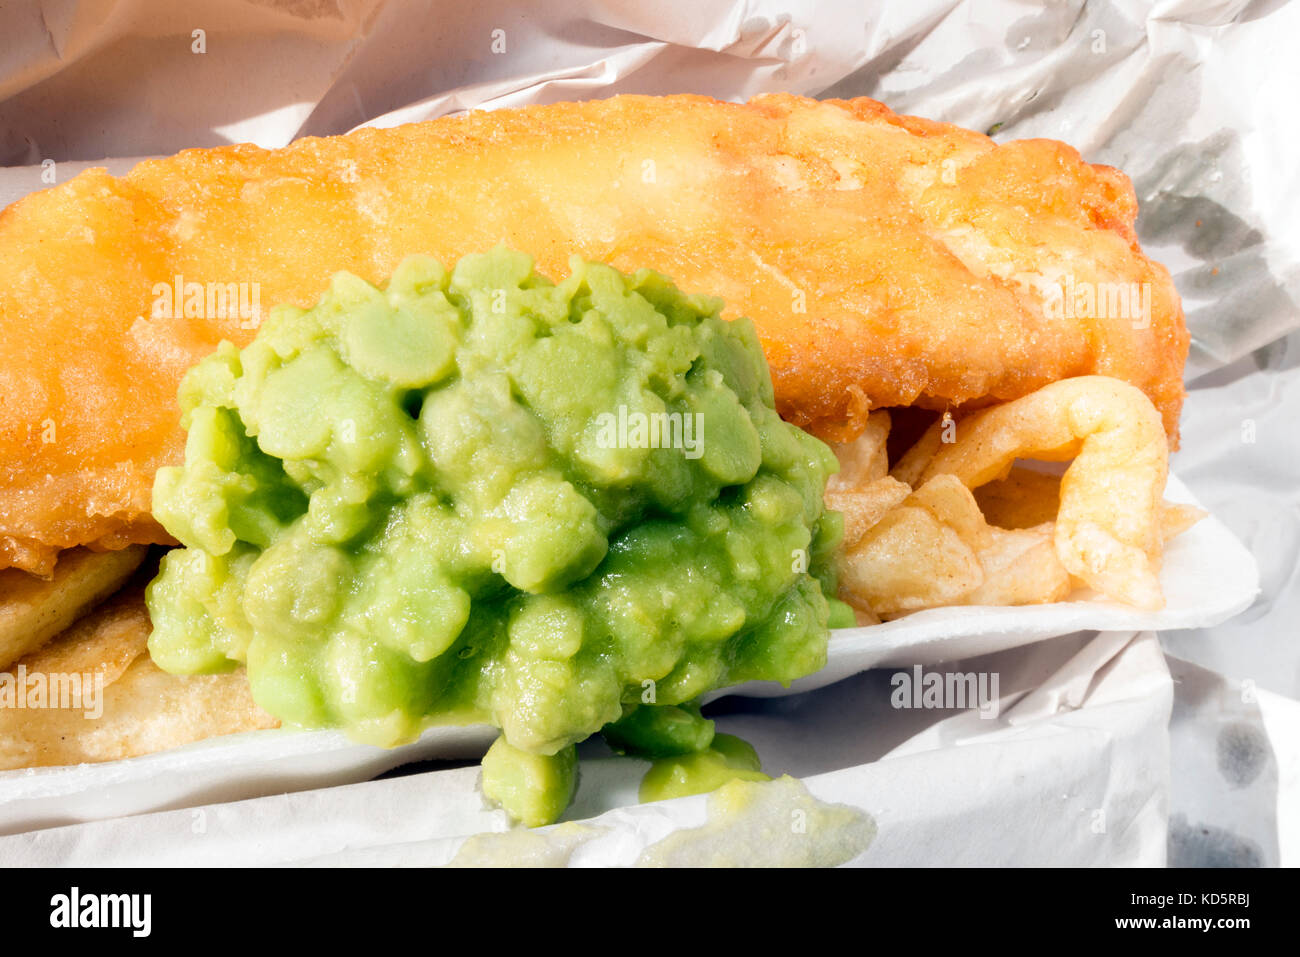 Fish and chips with mushy peas, wrapped in paper from a takeaway, UK. - Stock Image